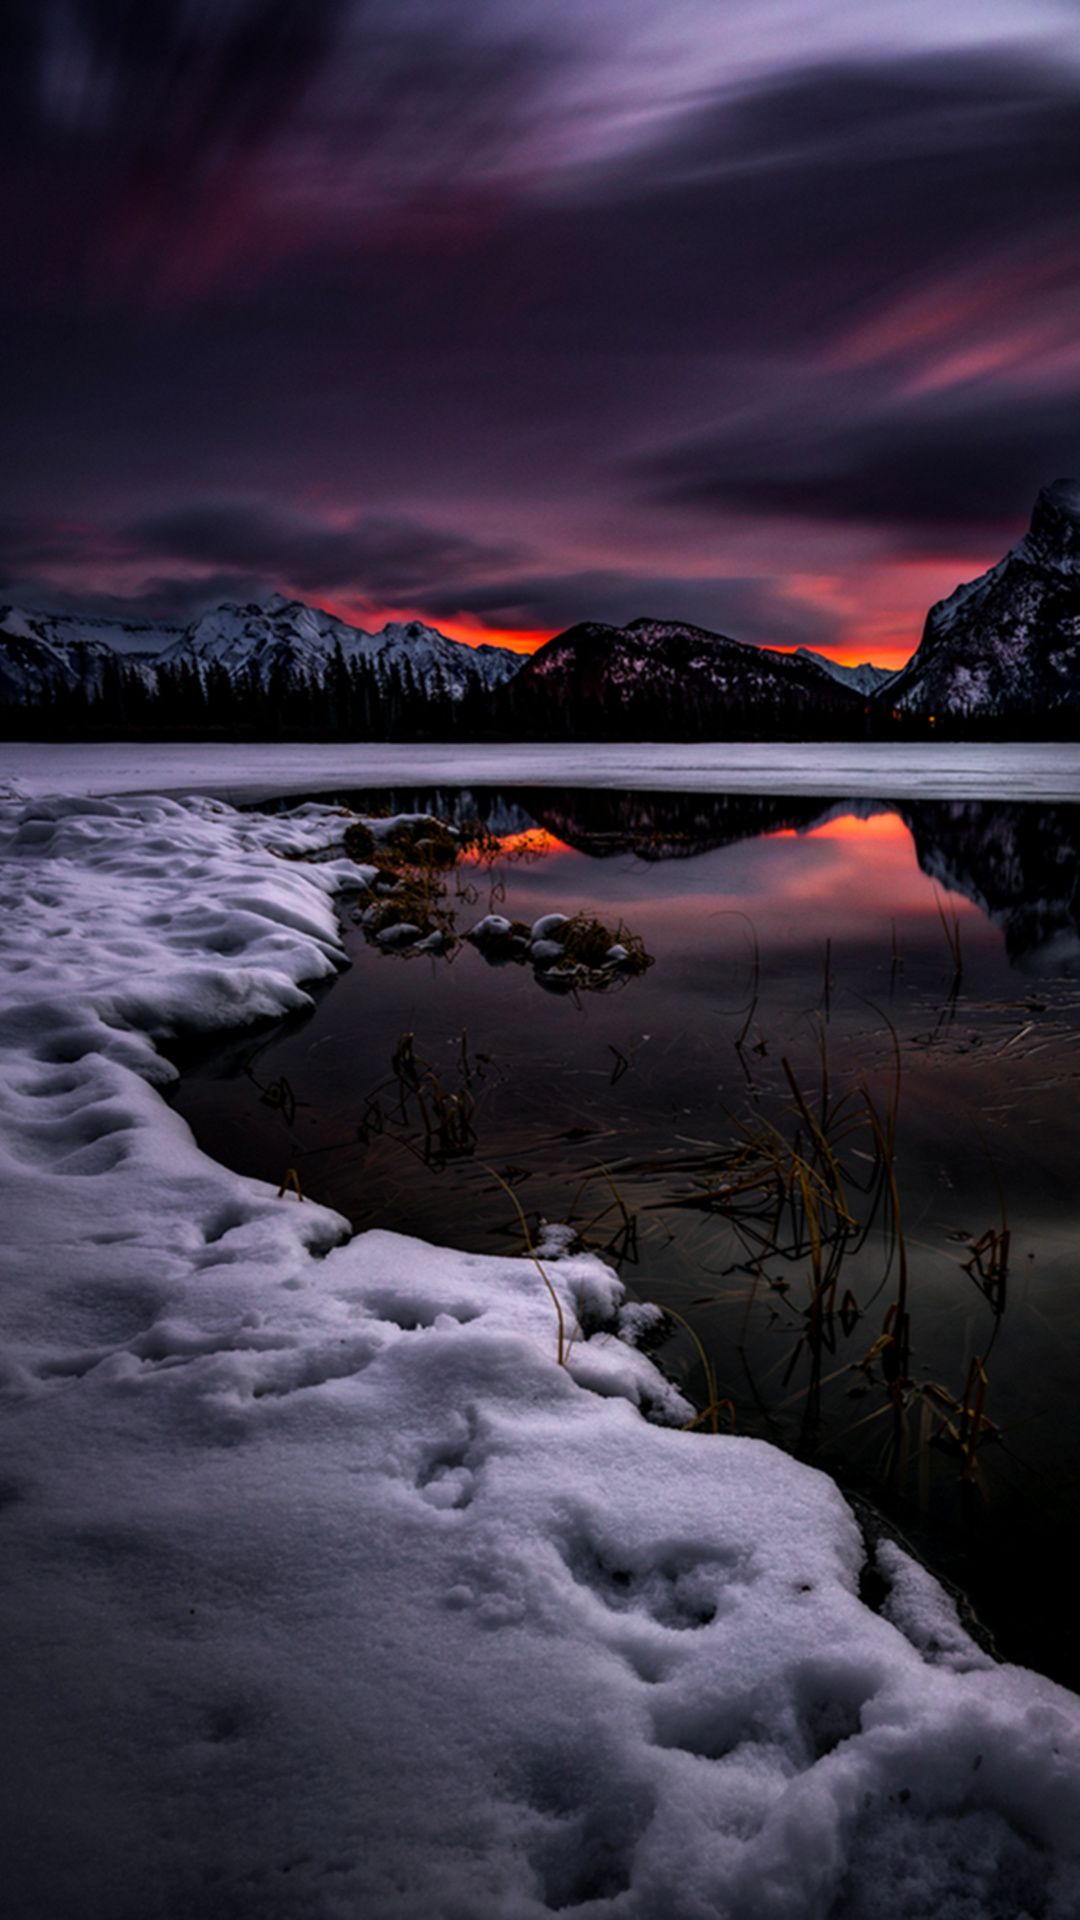 Http Www Vactualpapers Com Gallery Silence Of The Winter Hd